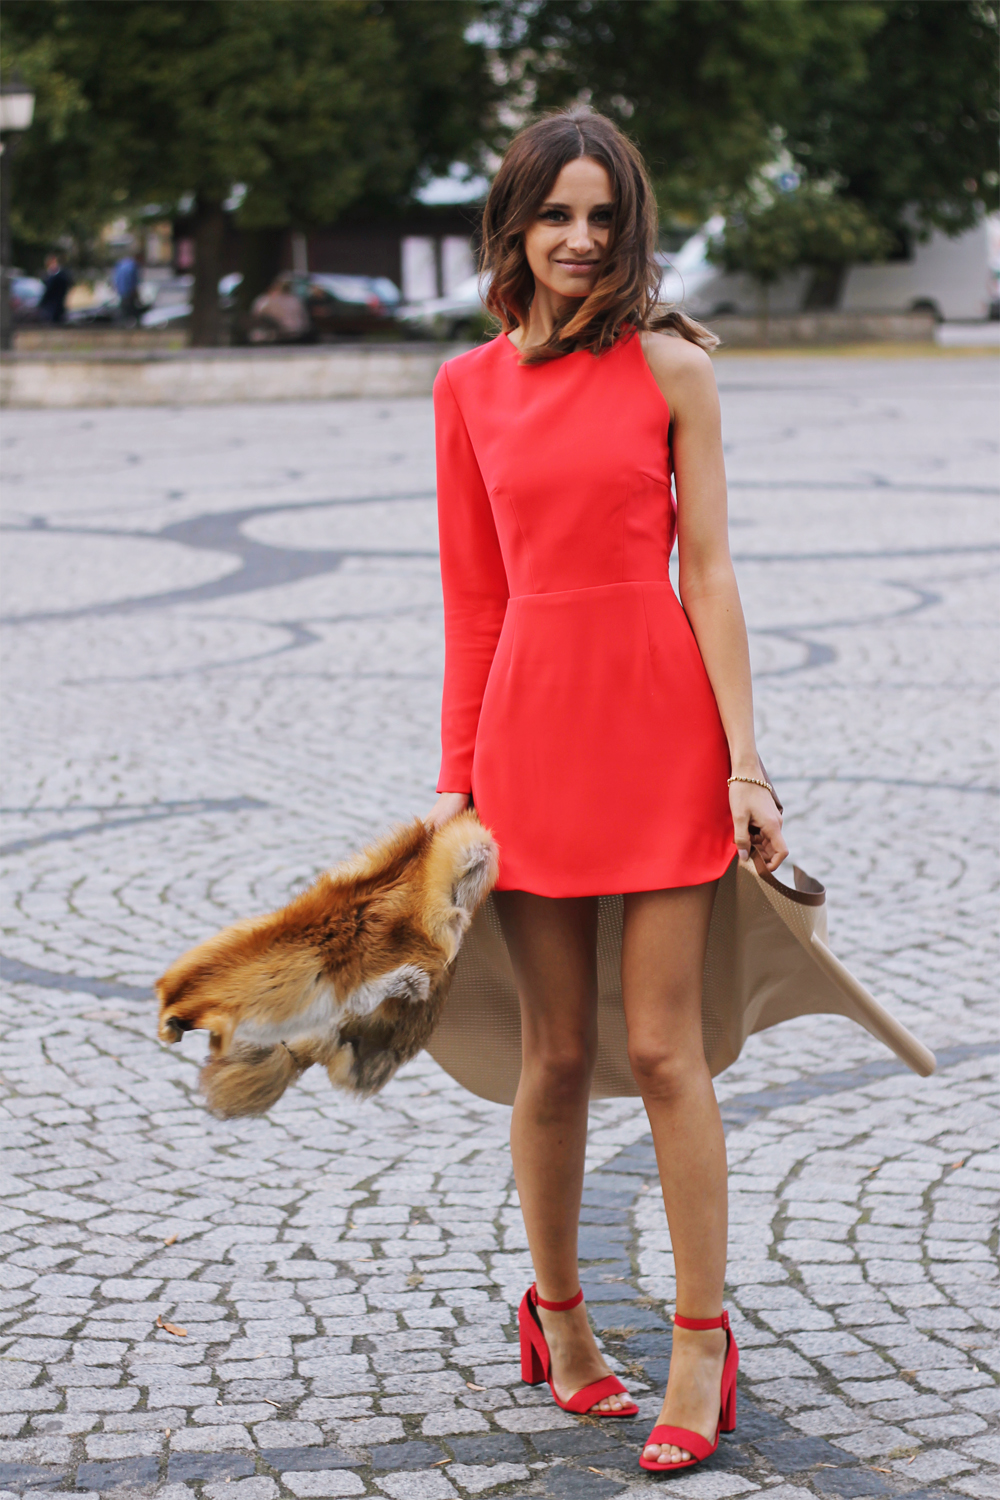 red dress original chic outfit clothes tumblr girl vogue lookbook ootd party look lilicons style fashion